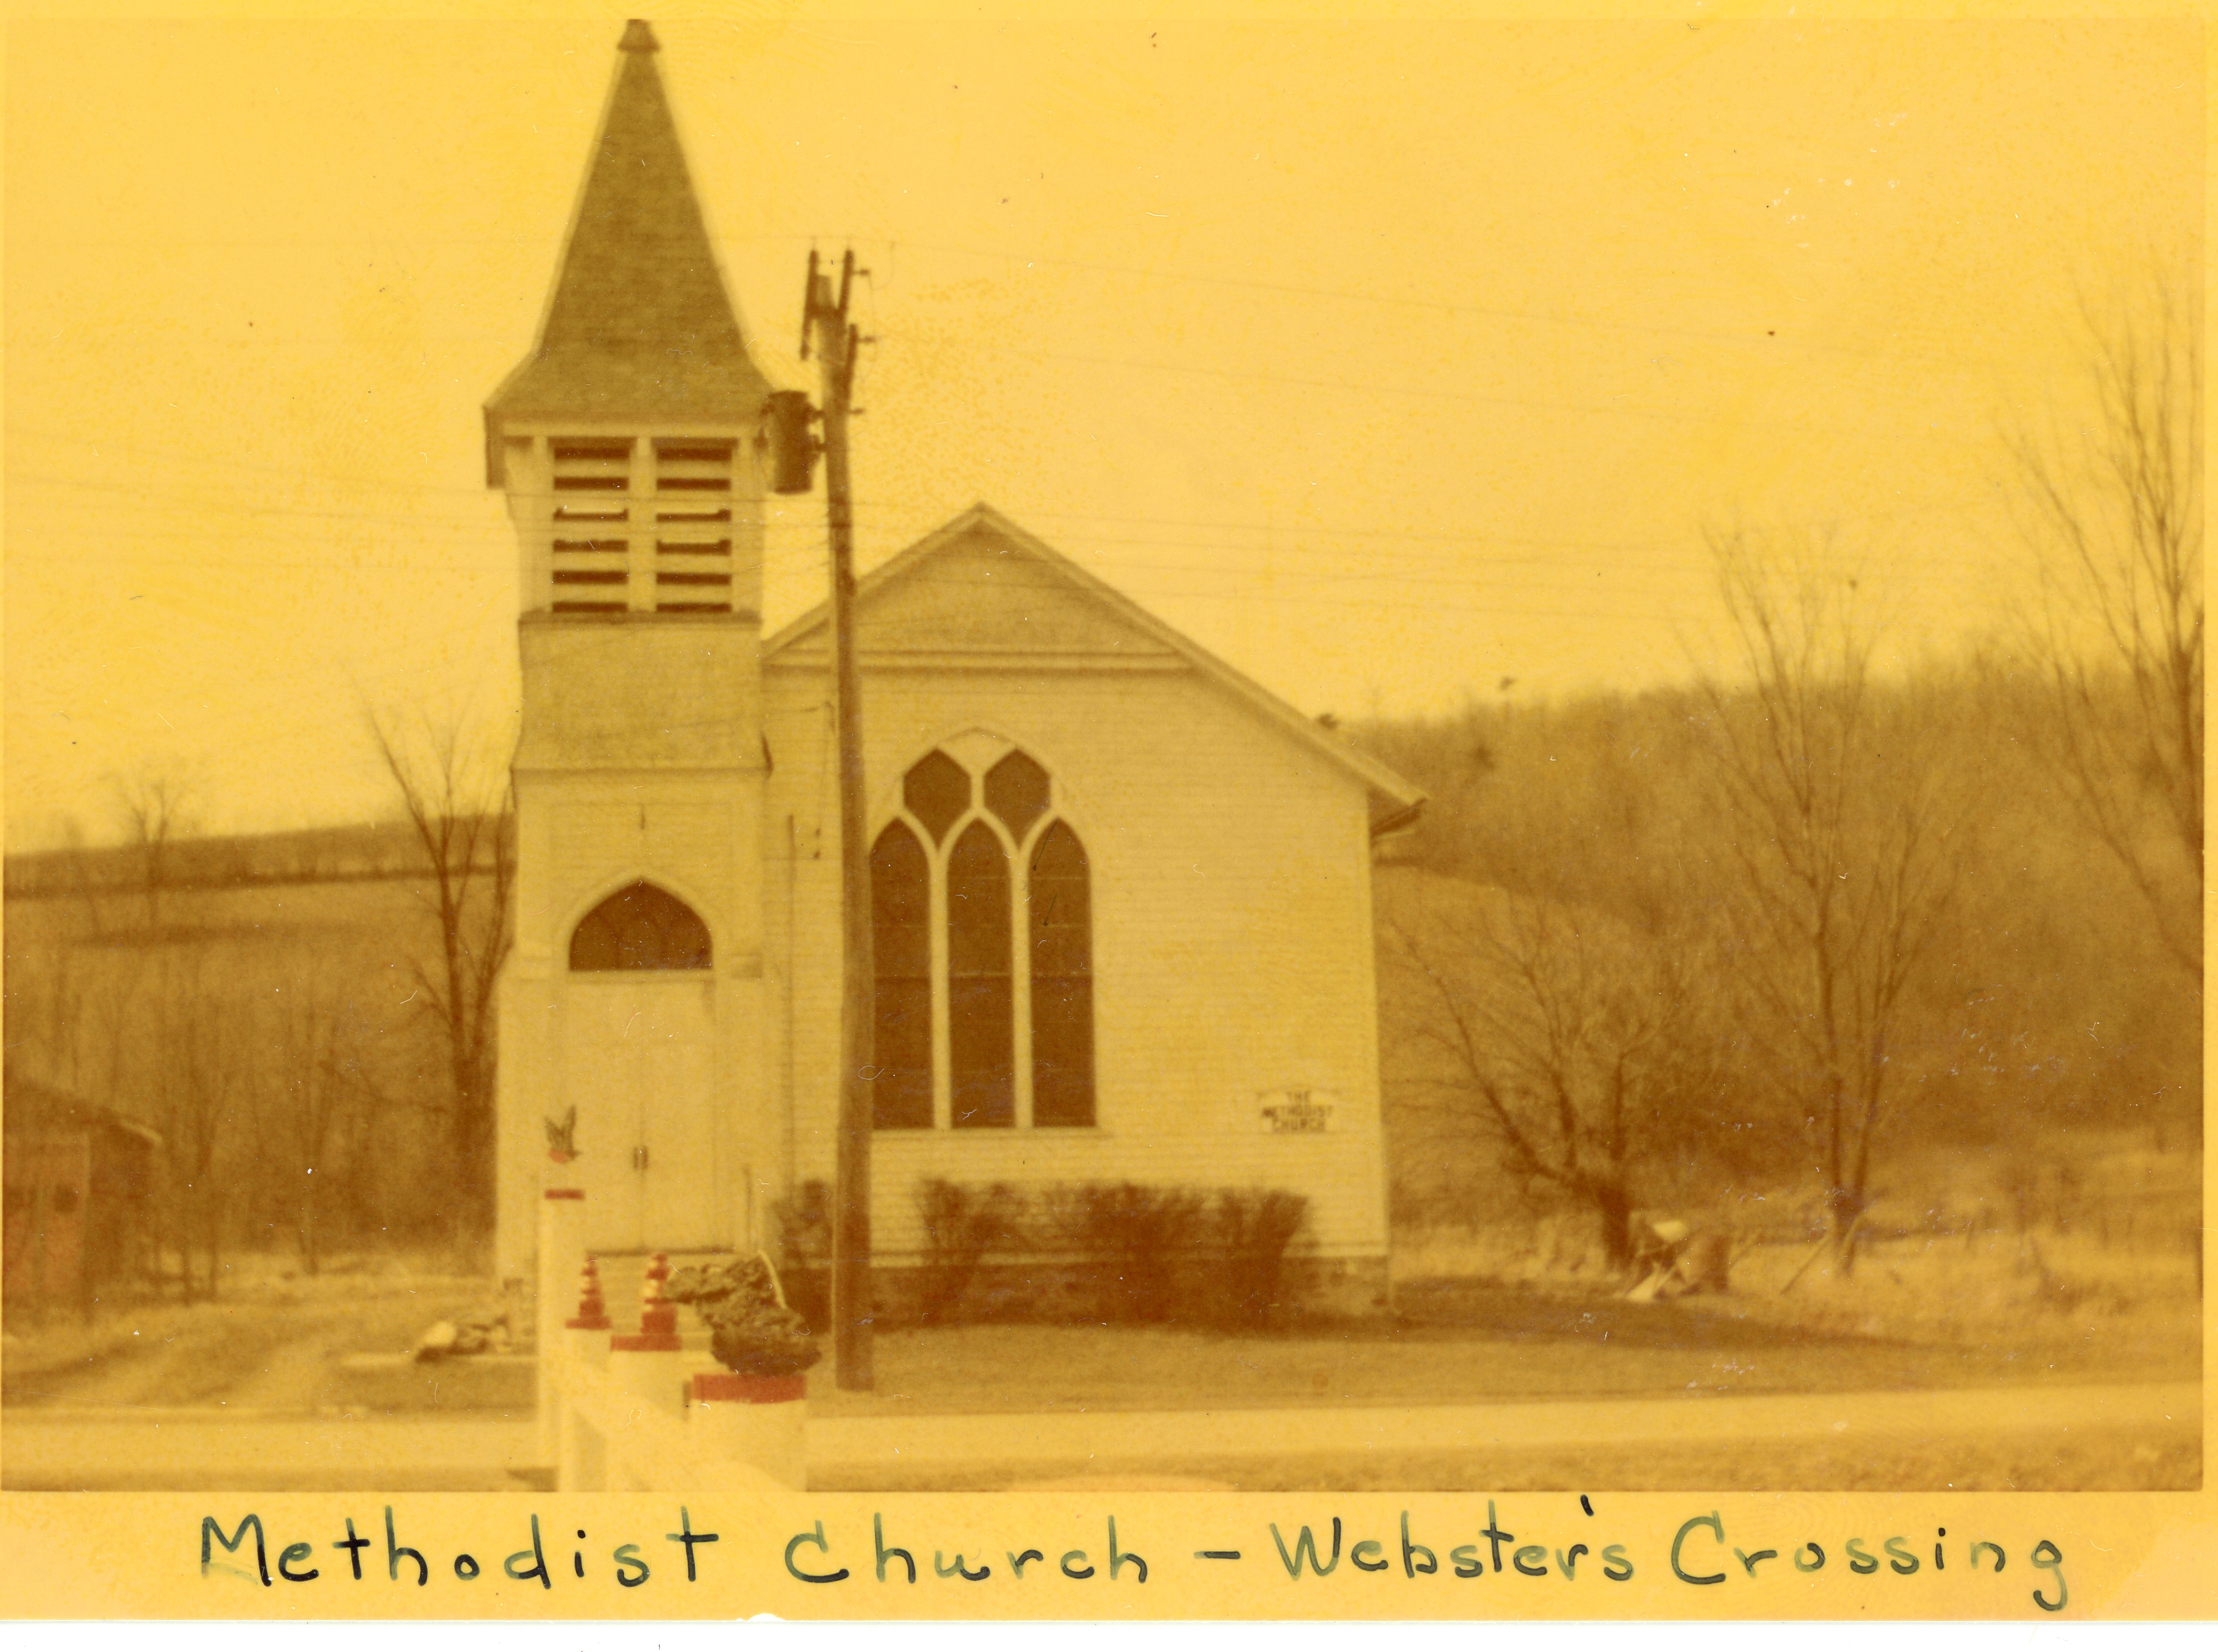 Image of Methodist Church in Webster's Crossing